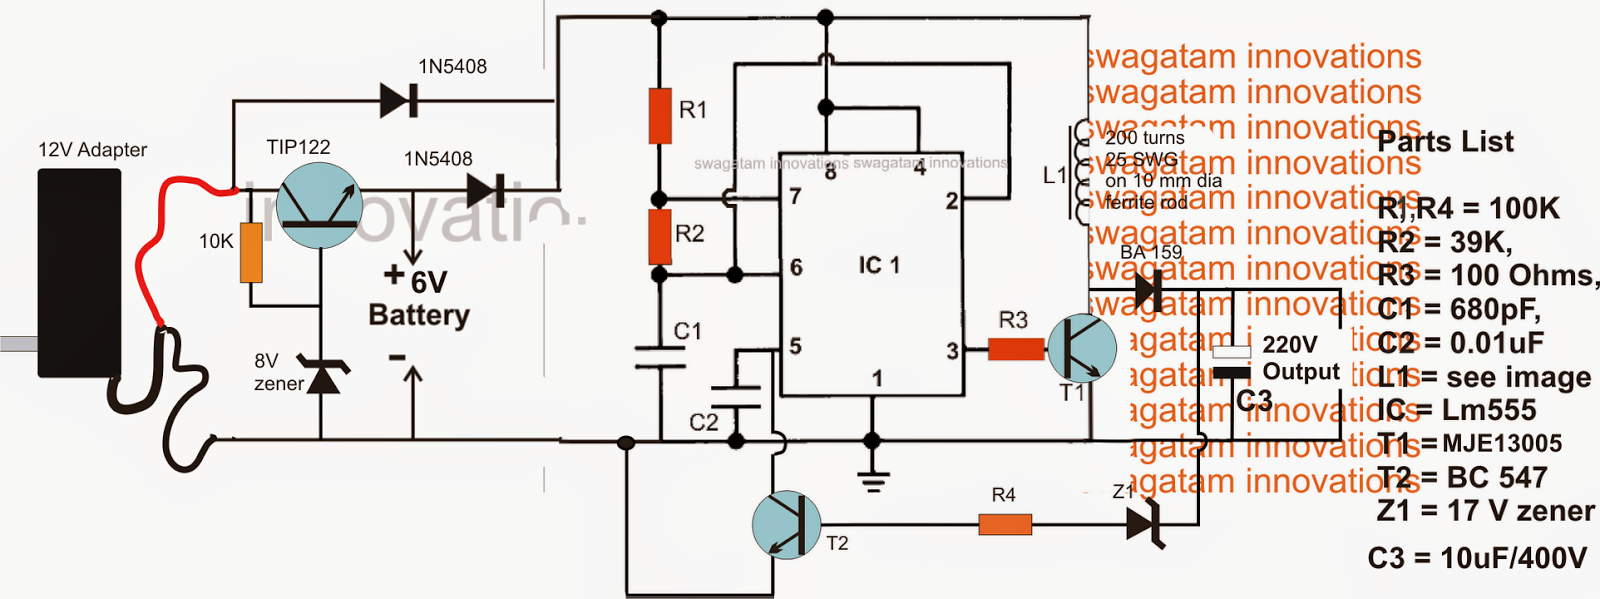 Inverter Circuit Diagram Free Download Wiring Diagram Schematic